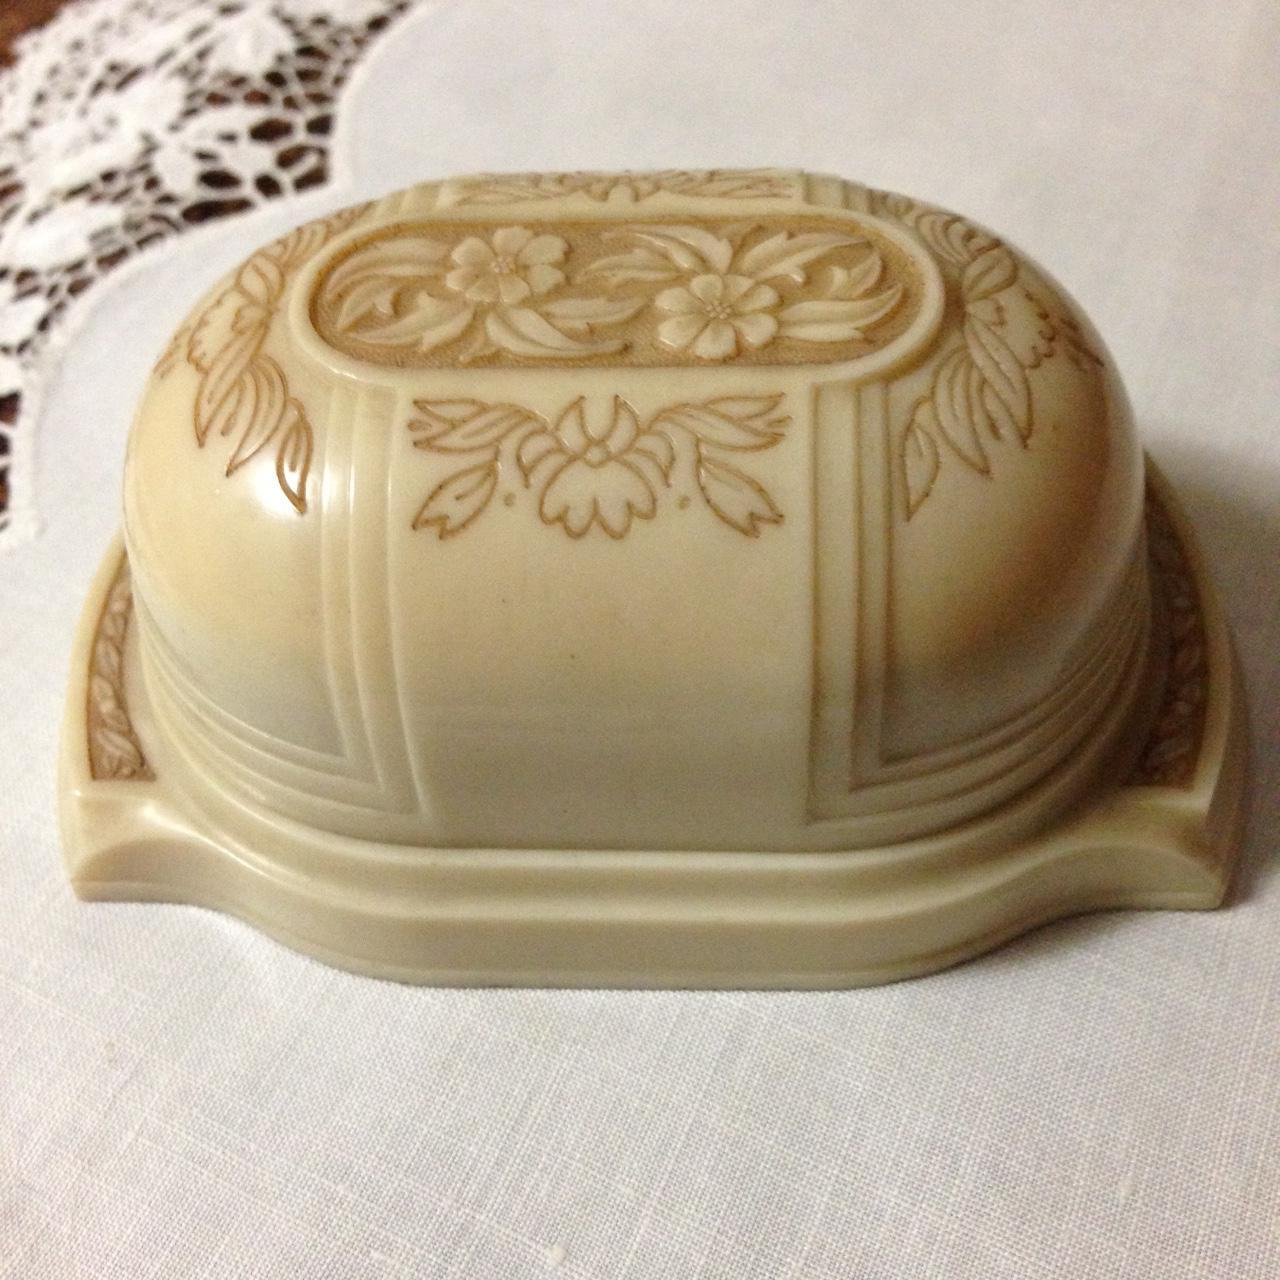 Vintage Celluloid Ring Box